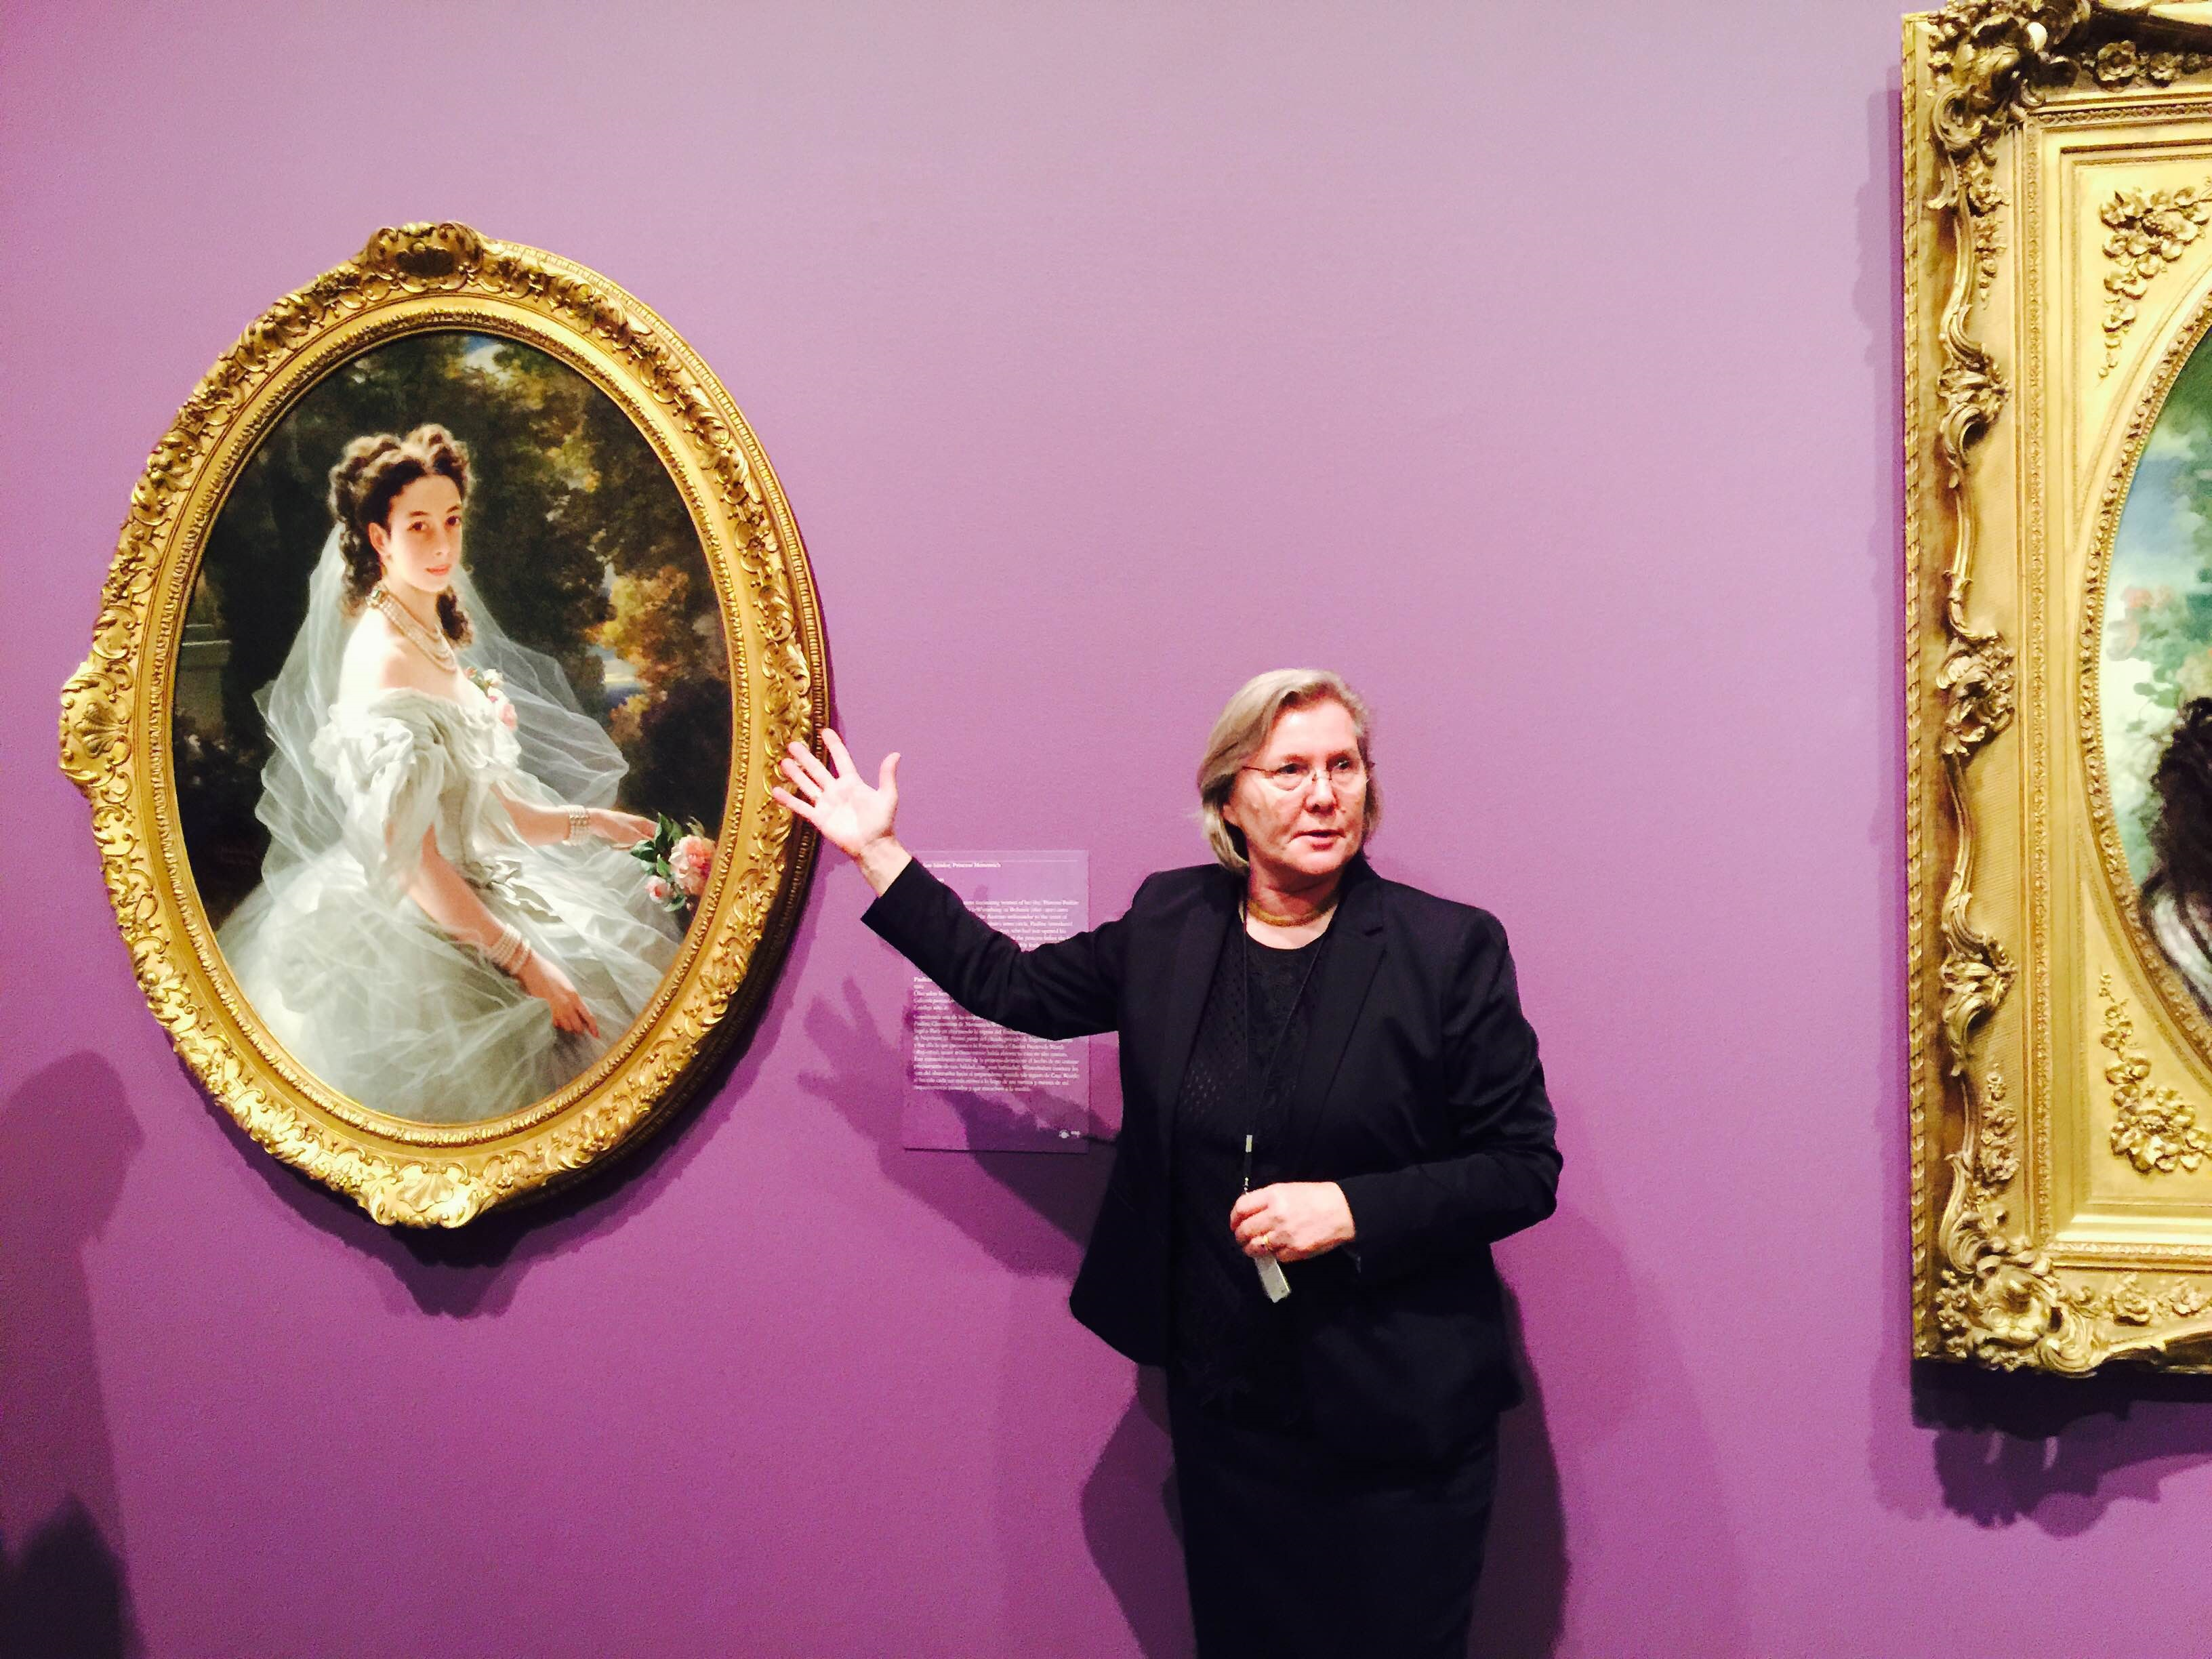 Dr. Helga K Aurisch,  curator European Art, Museum of Fine Arts Houston MFAH, in front of Pauline Sándor, Princess Metternich